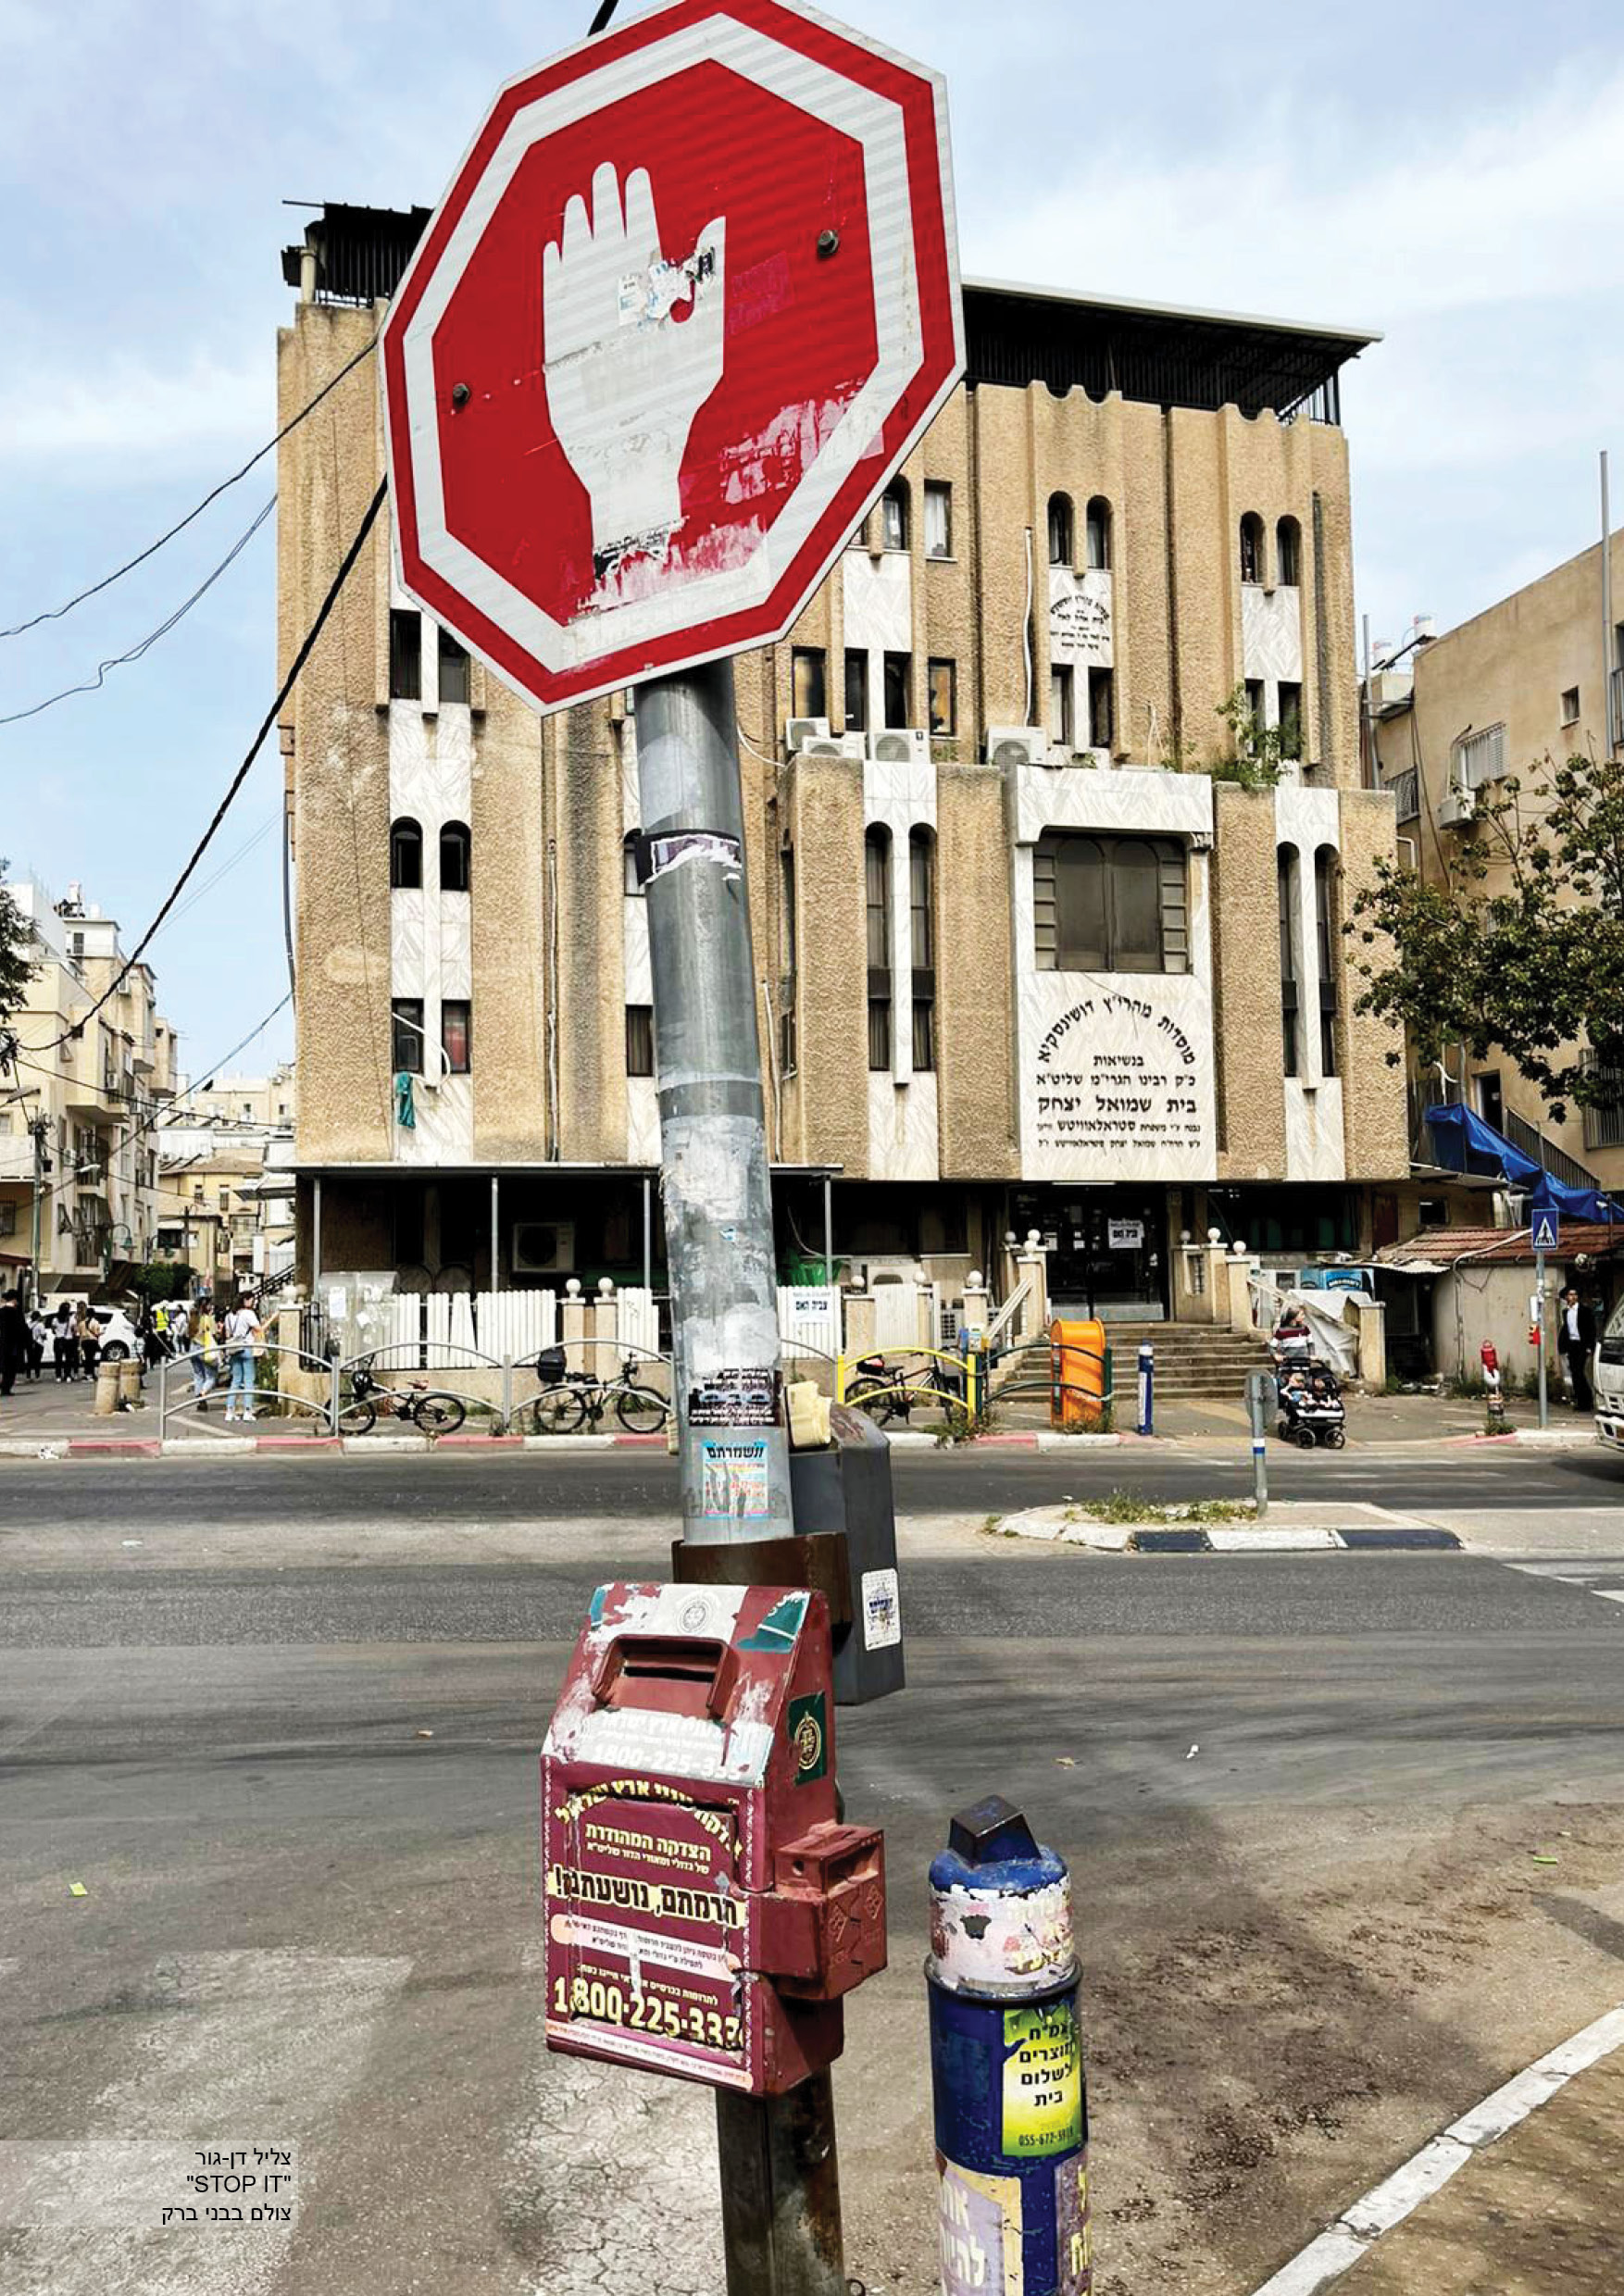 A synagogue at the background with three charity boxes hanged on a signpost in Bnei-Brak. Photo: Tzelil Dan-Gur